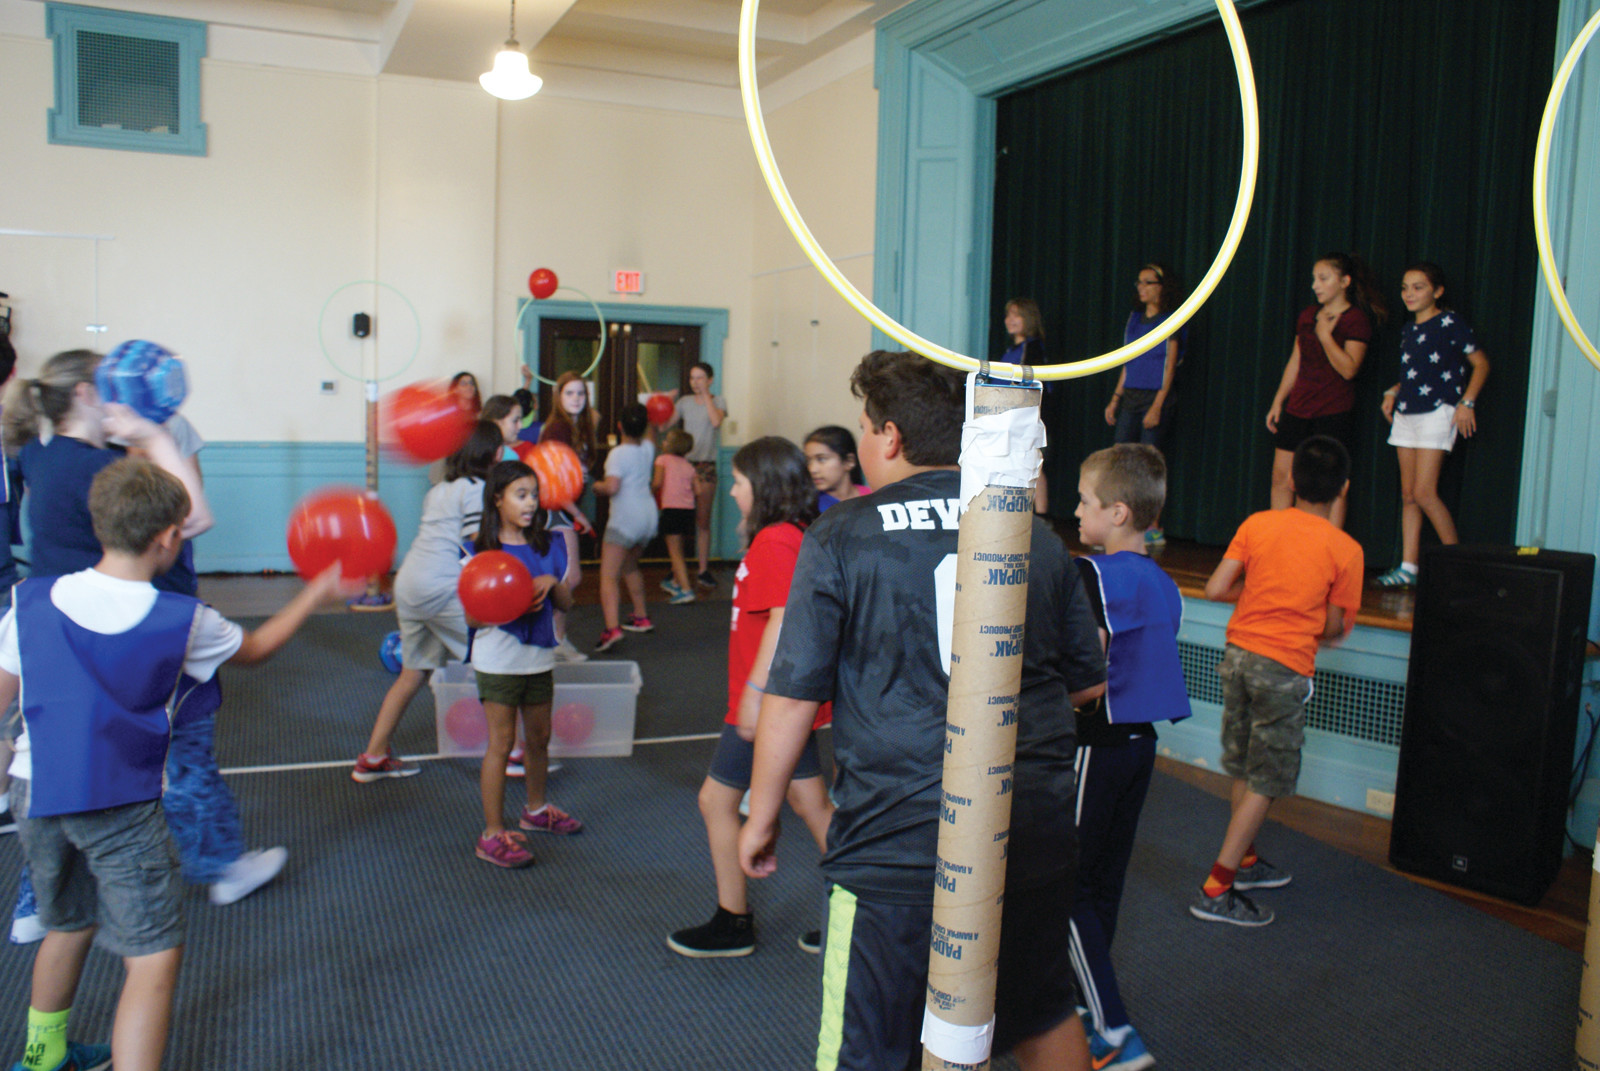 PLAYING QUIDDITCH: Pictured are Cranston youth enjoying a match of Quidditch of Harry Potter fame at the William Hall Library.